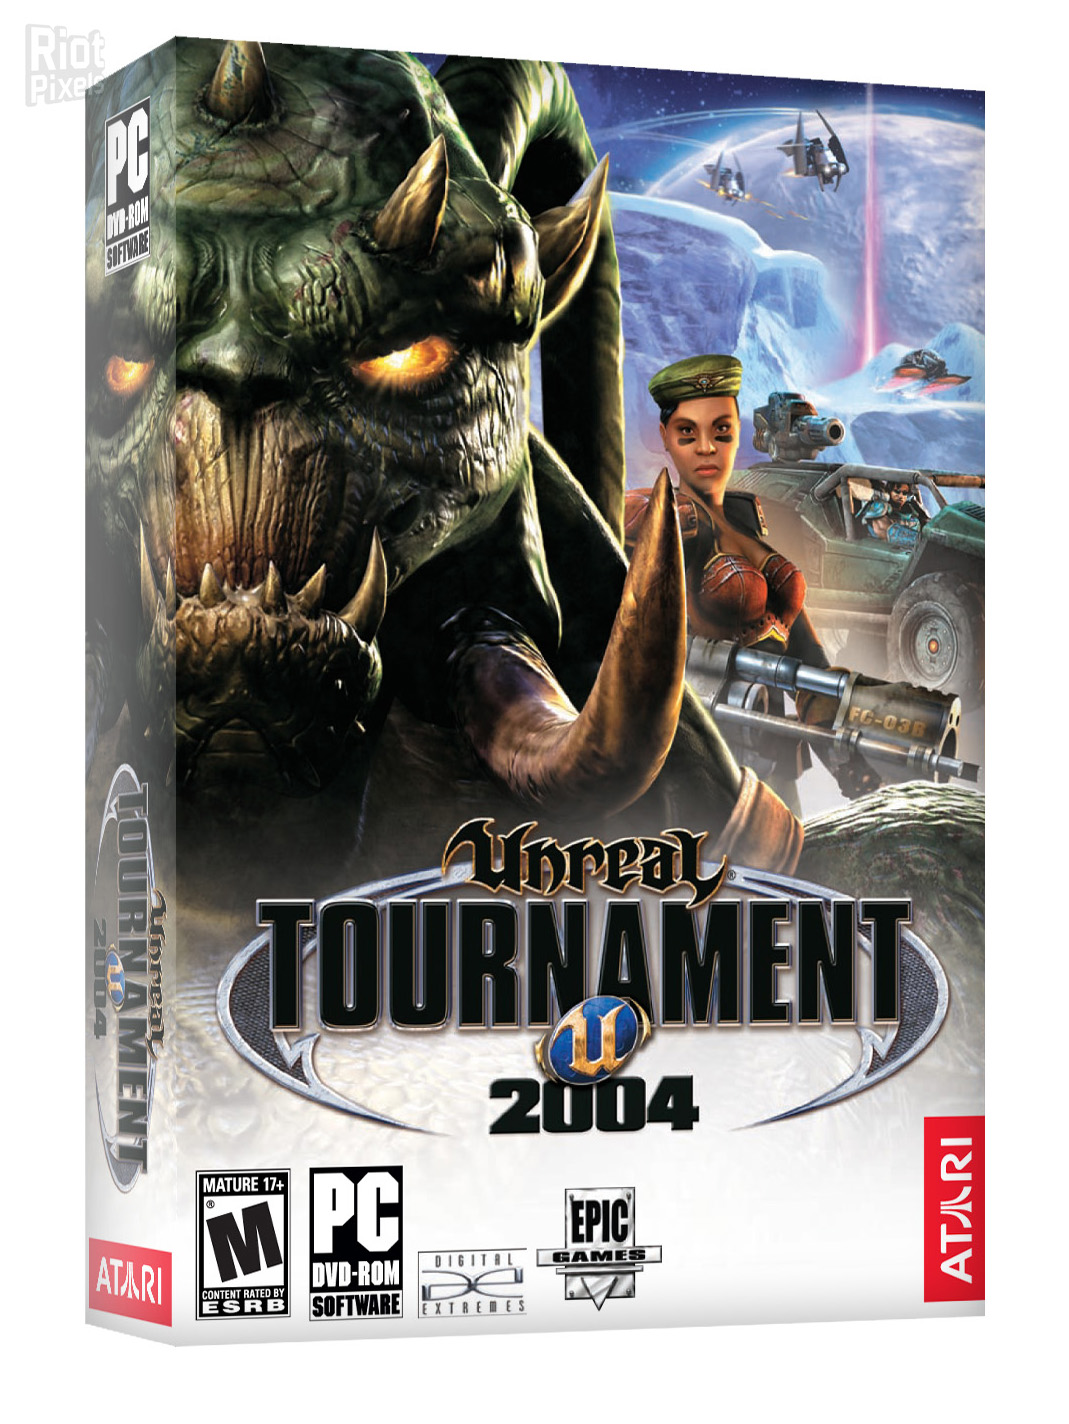 Unreal Tournament 2004 Full Game Download Free